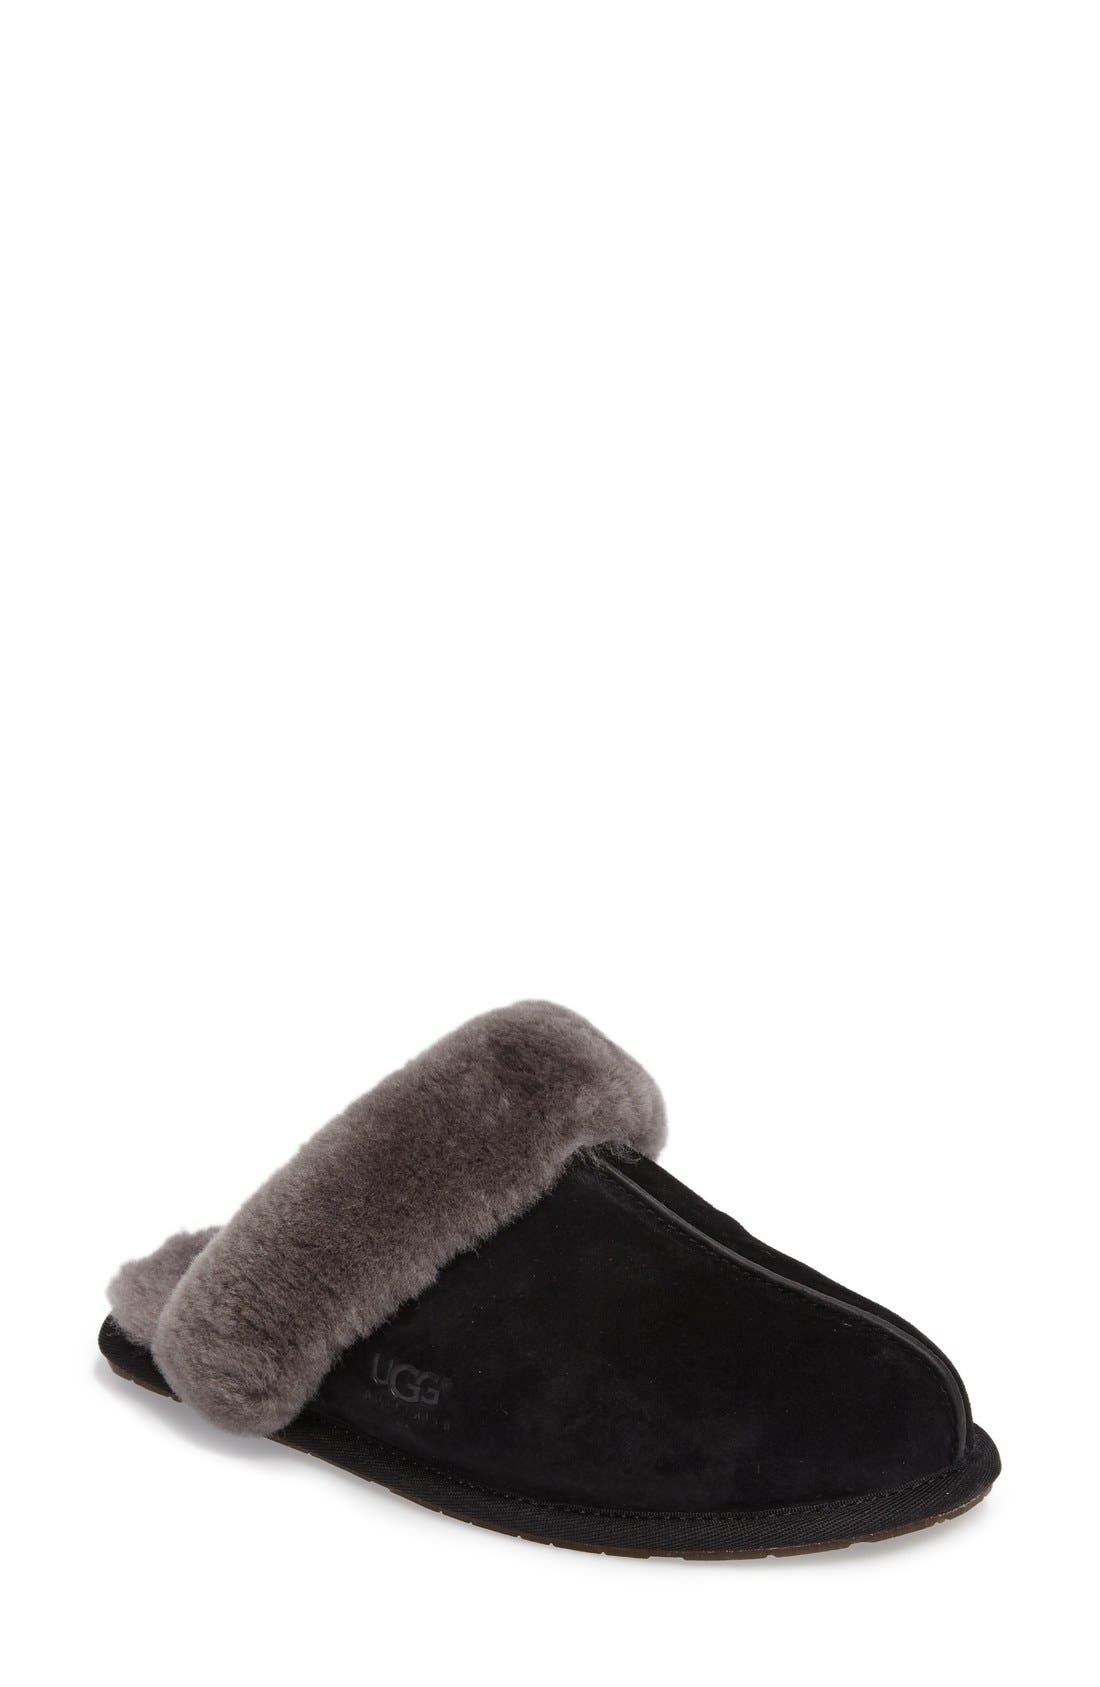 Alternate Image 1 Selected - UGG® Scuffette II Slipper (Women)